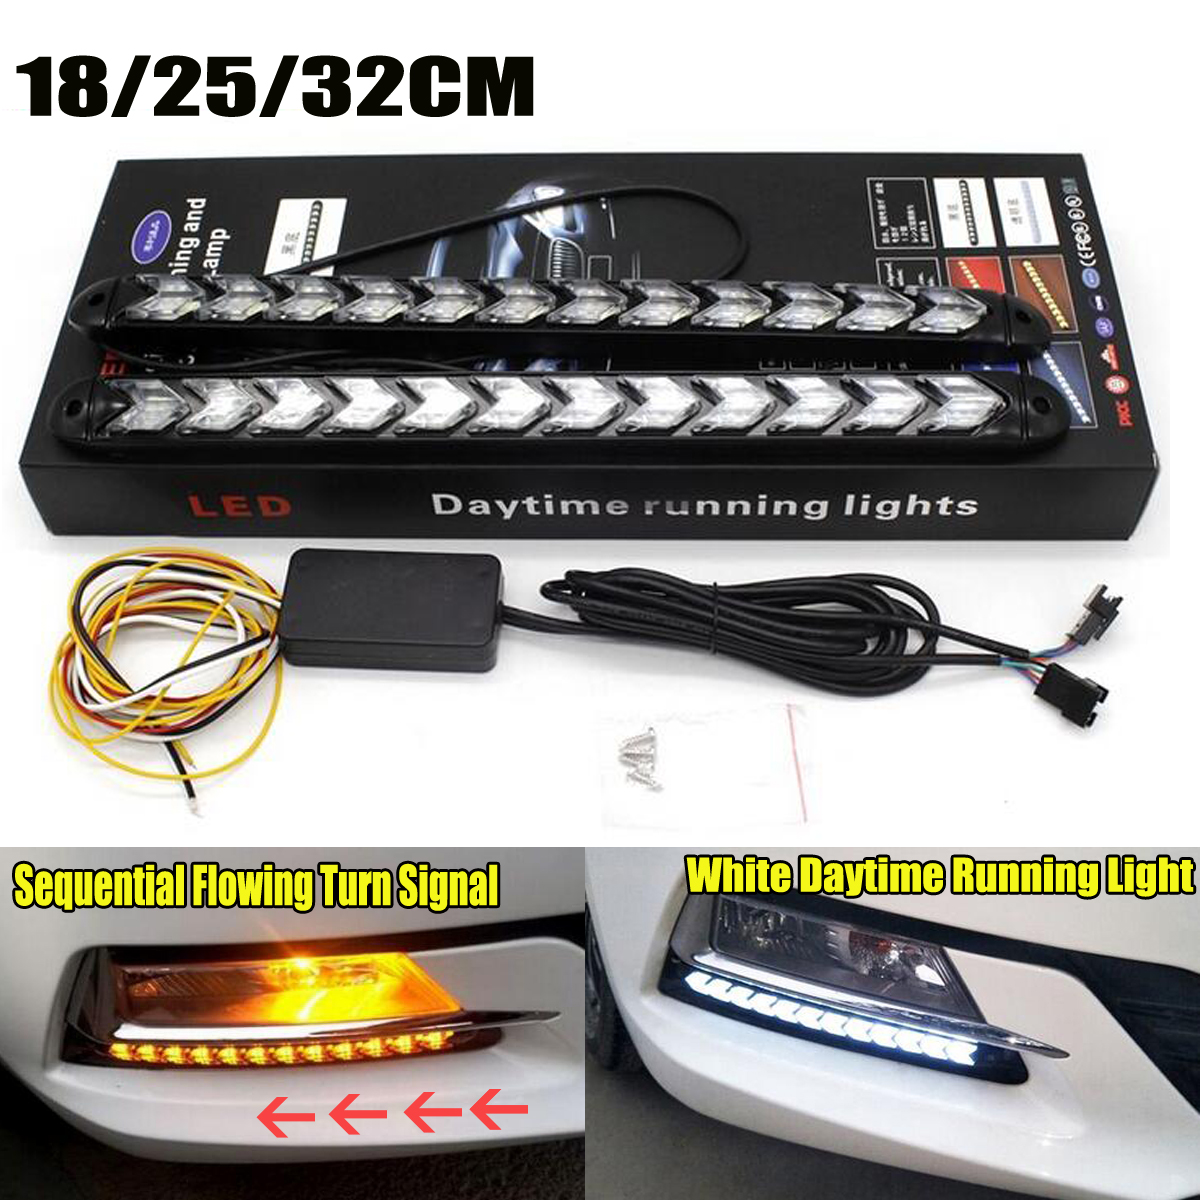 Confident 2x Led Drl Daytime Running Light Car Styling Dynamic Streamer Flow With Amber Turn Signal Warning Steering Fog Day Lamp Goods Of Every Description Are Available Car Light Assembly Automobiles & Motorcycles